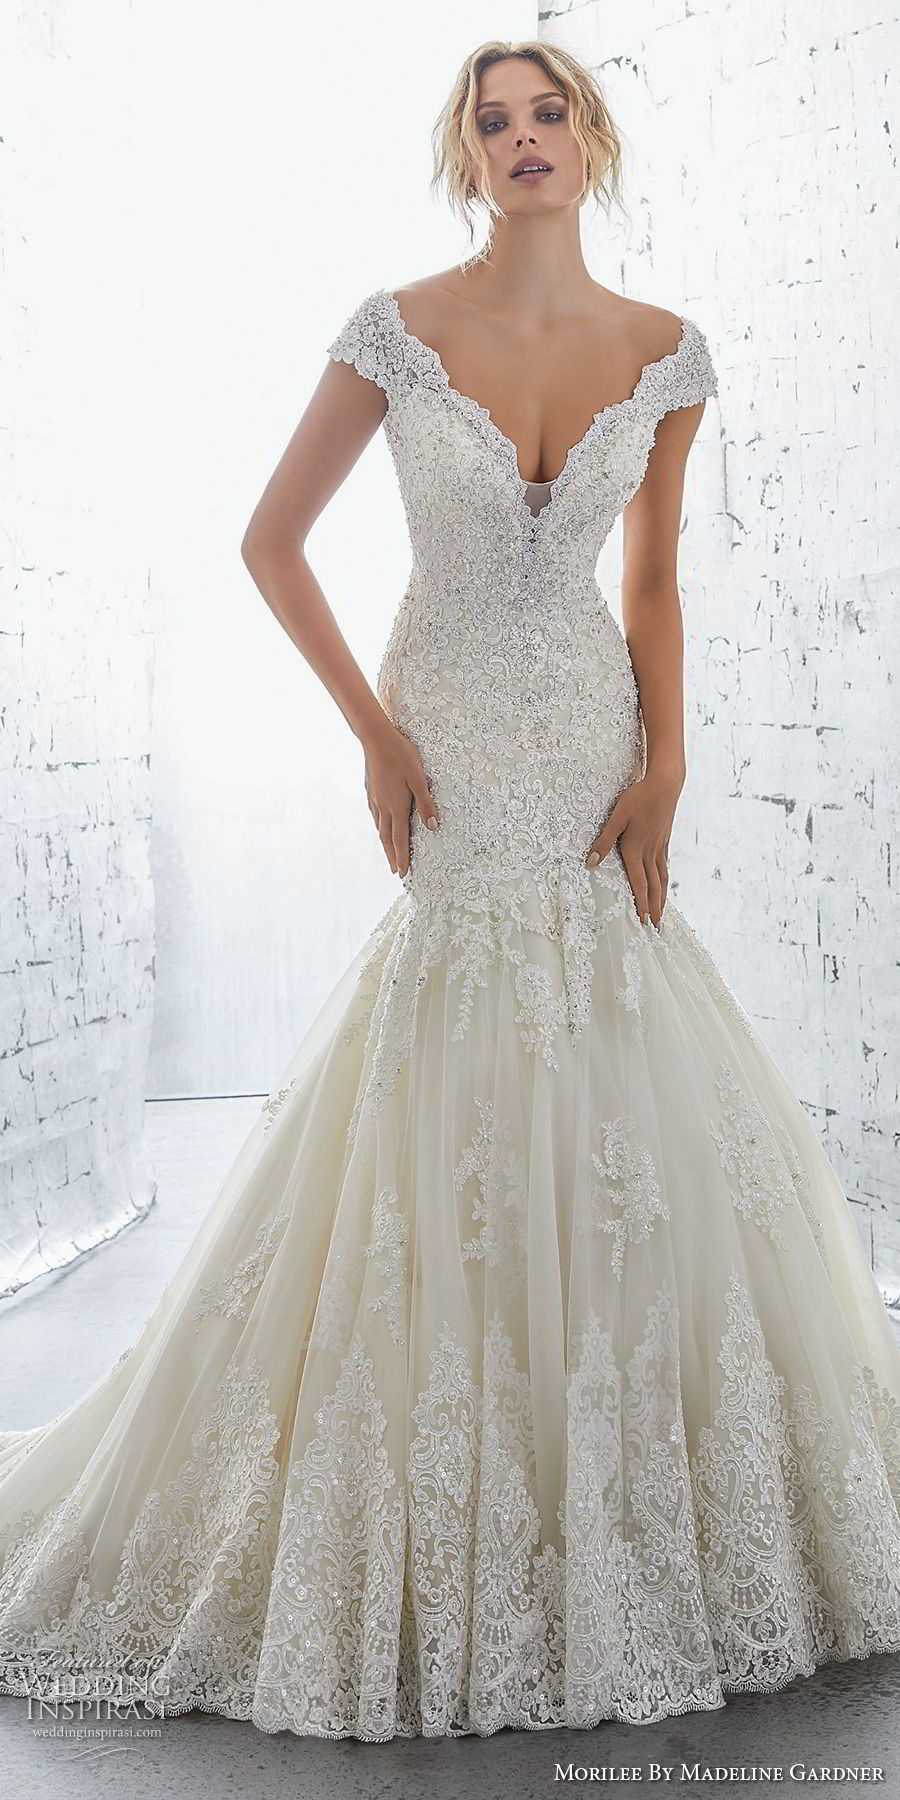 morilee 2018 bridal cap sleeves v neck heavily embellished bodice elegant mermaid wedding dress open v back chapel train (1) mv